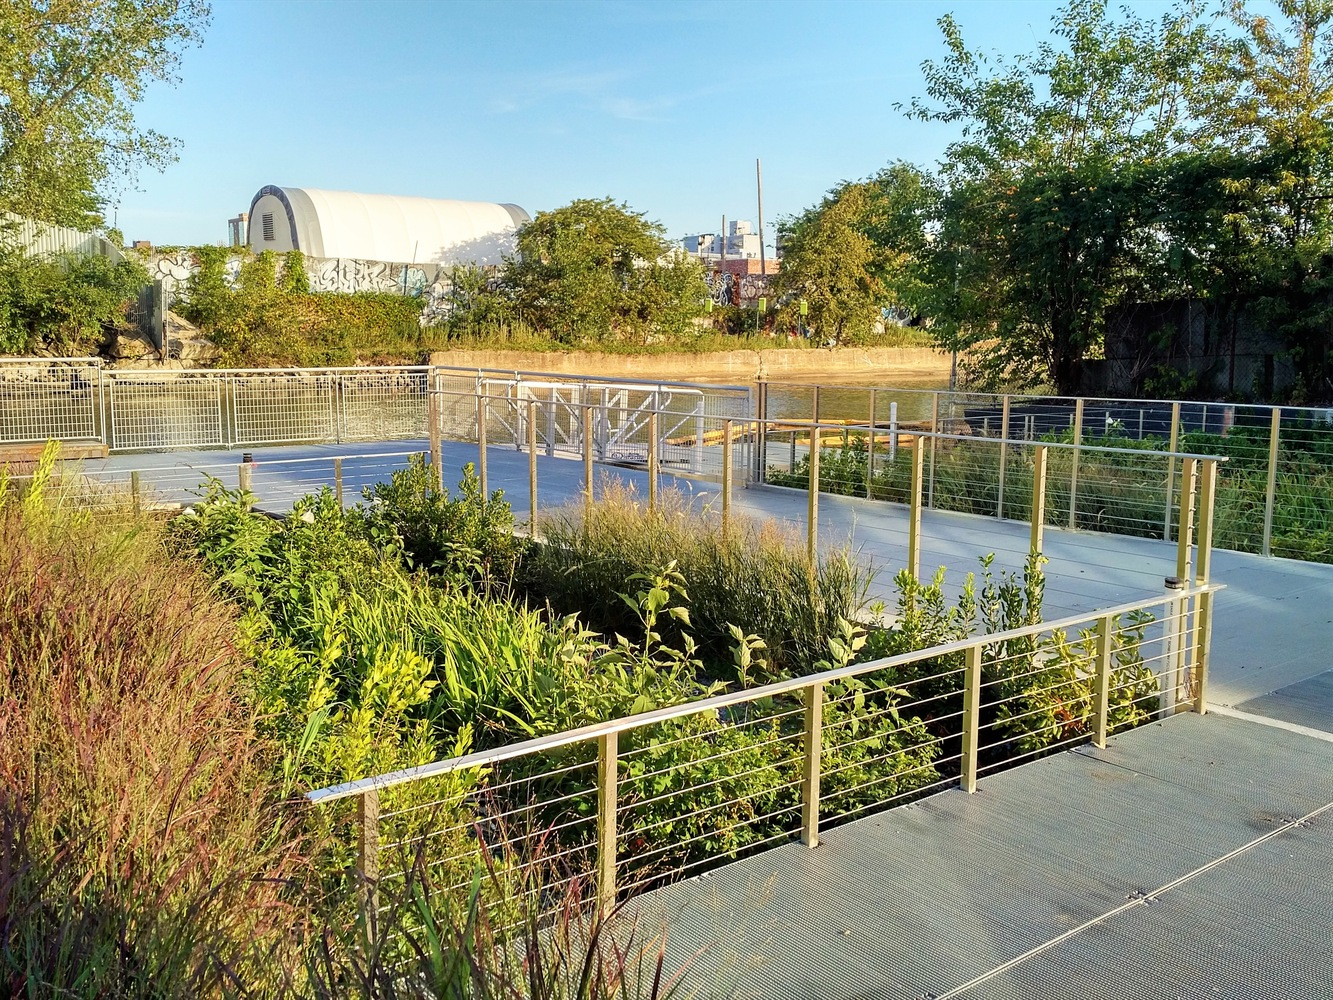 35 Exemplary Projects Win 2017 AIA New York Design AwardsThe Gowanus Canal Sponge Park